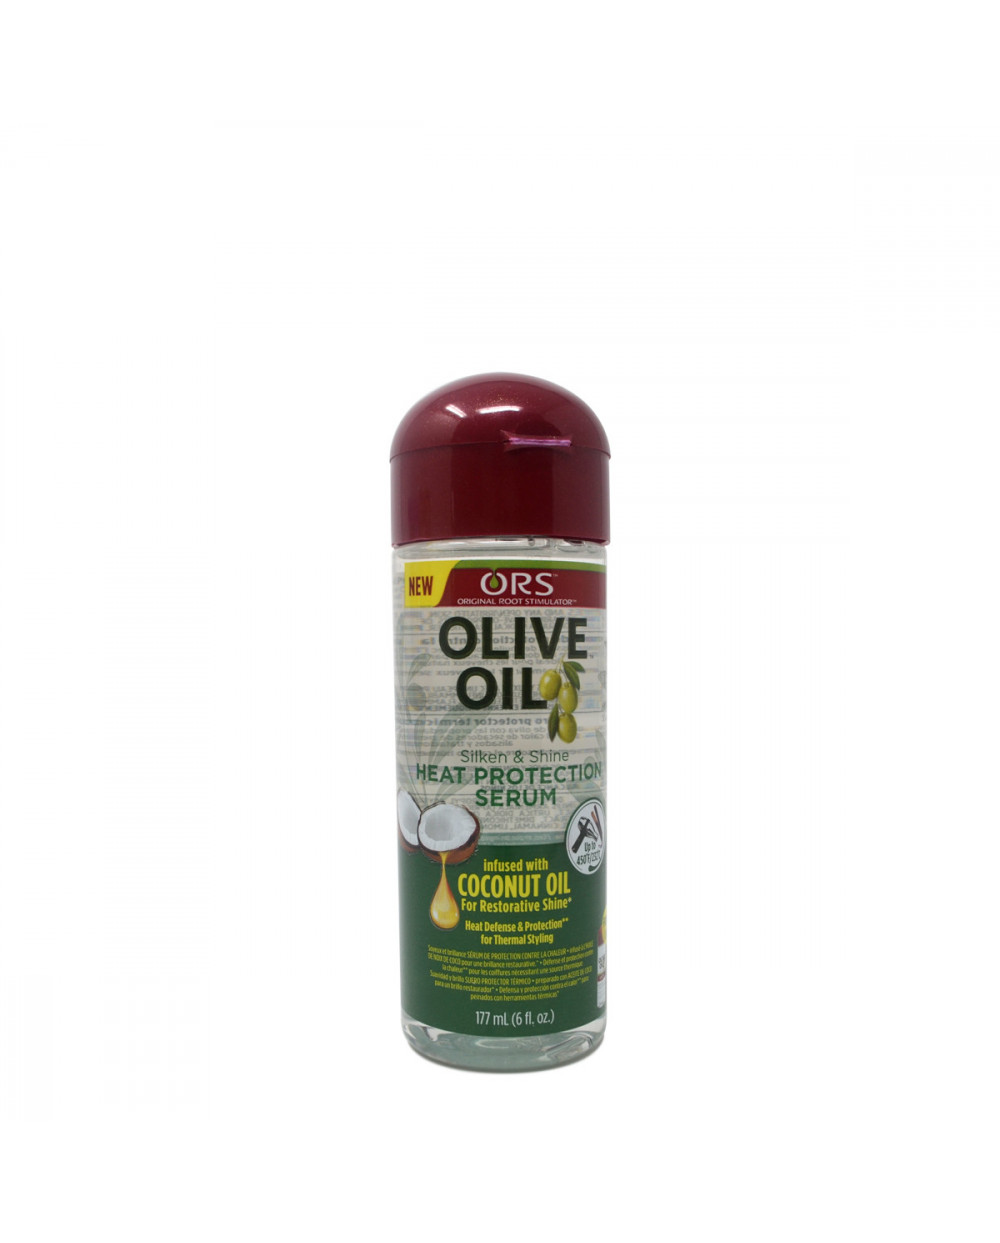 ORS olive oil serum capillaire177ml